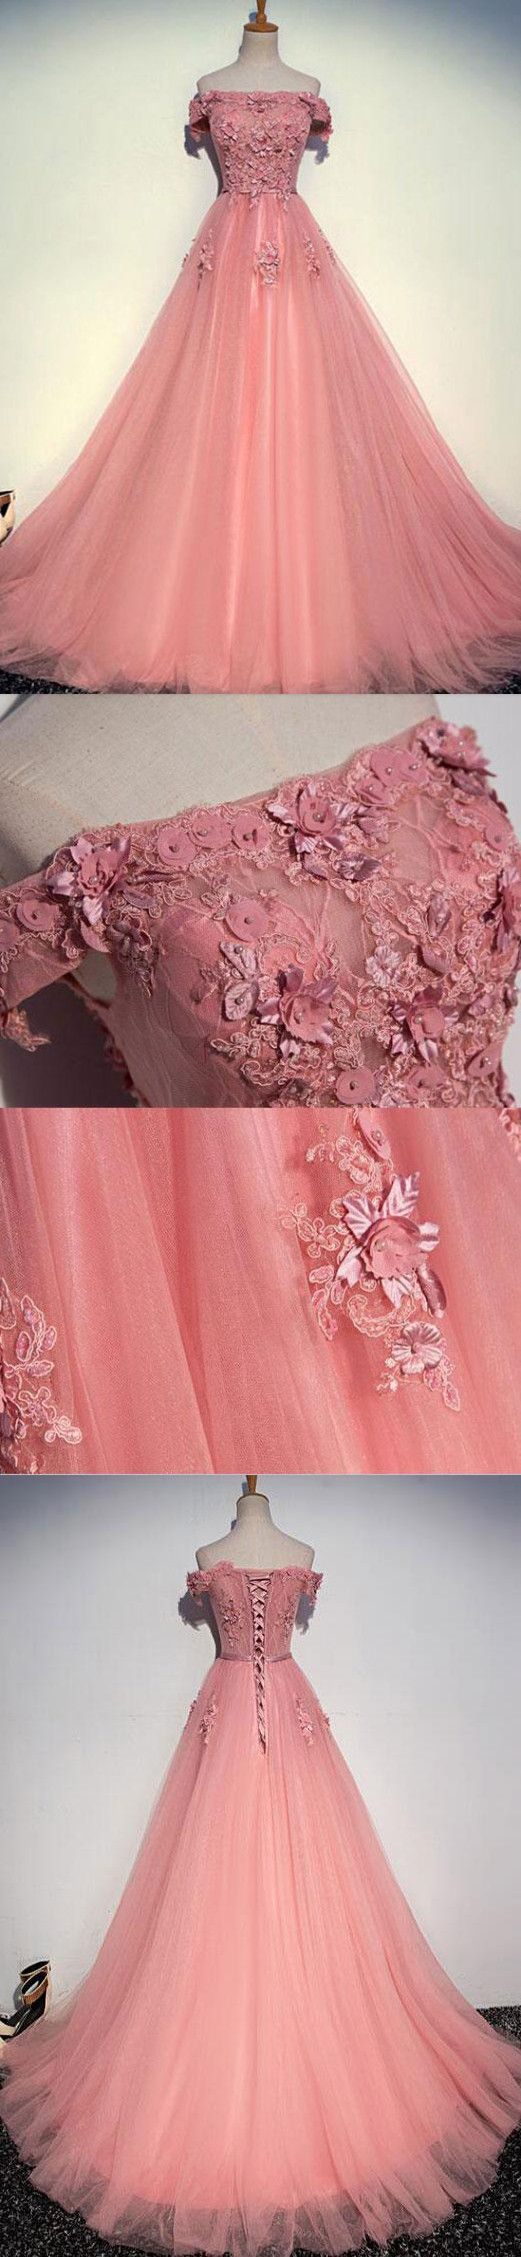 A-line Off-the-shoulder Sweep/Brush Train Short Tulle Prom Dress/Evening Dress # VB985 #fashion #long #prom #popular #A-line #evening #Appliques